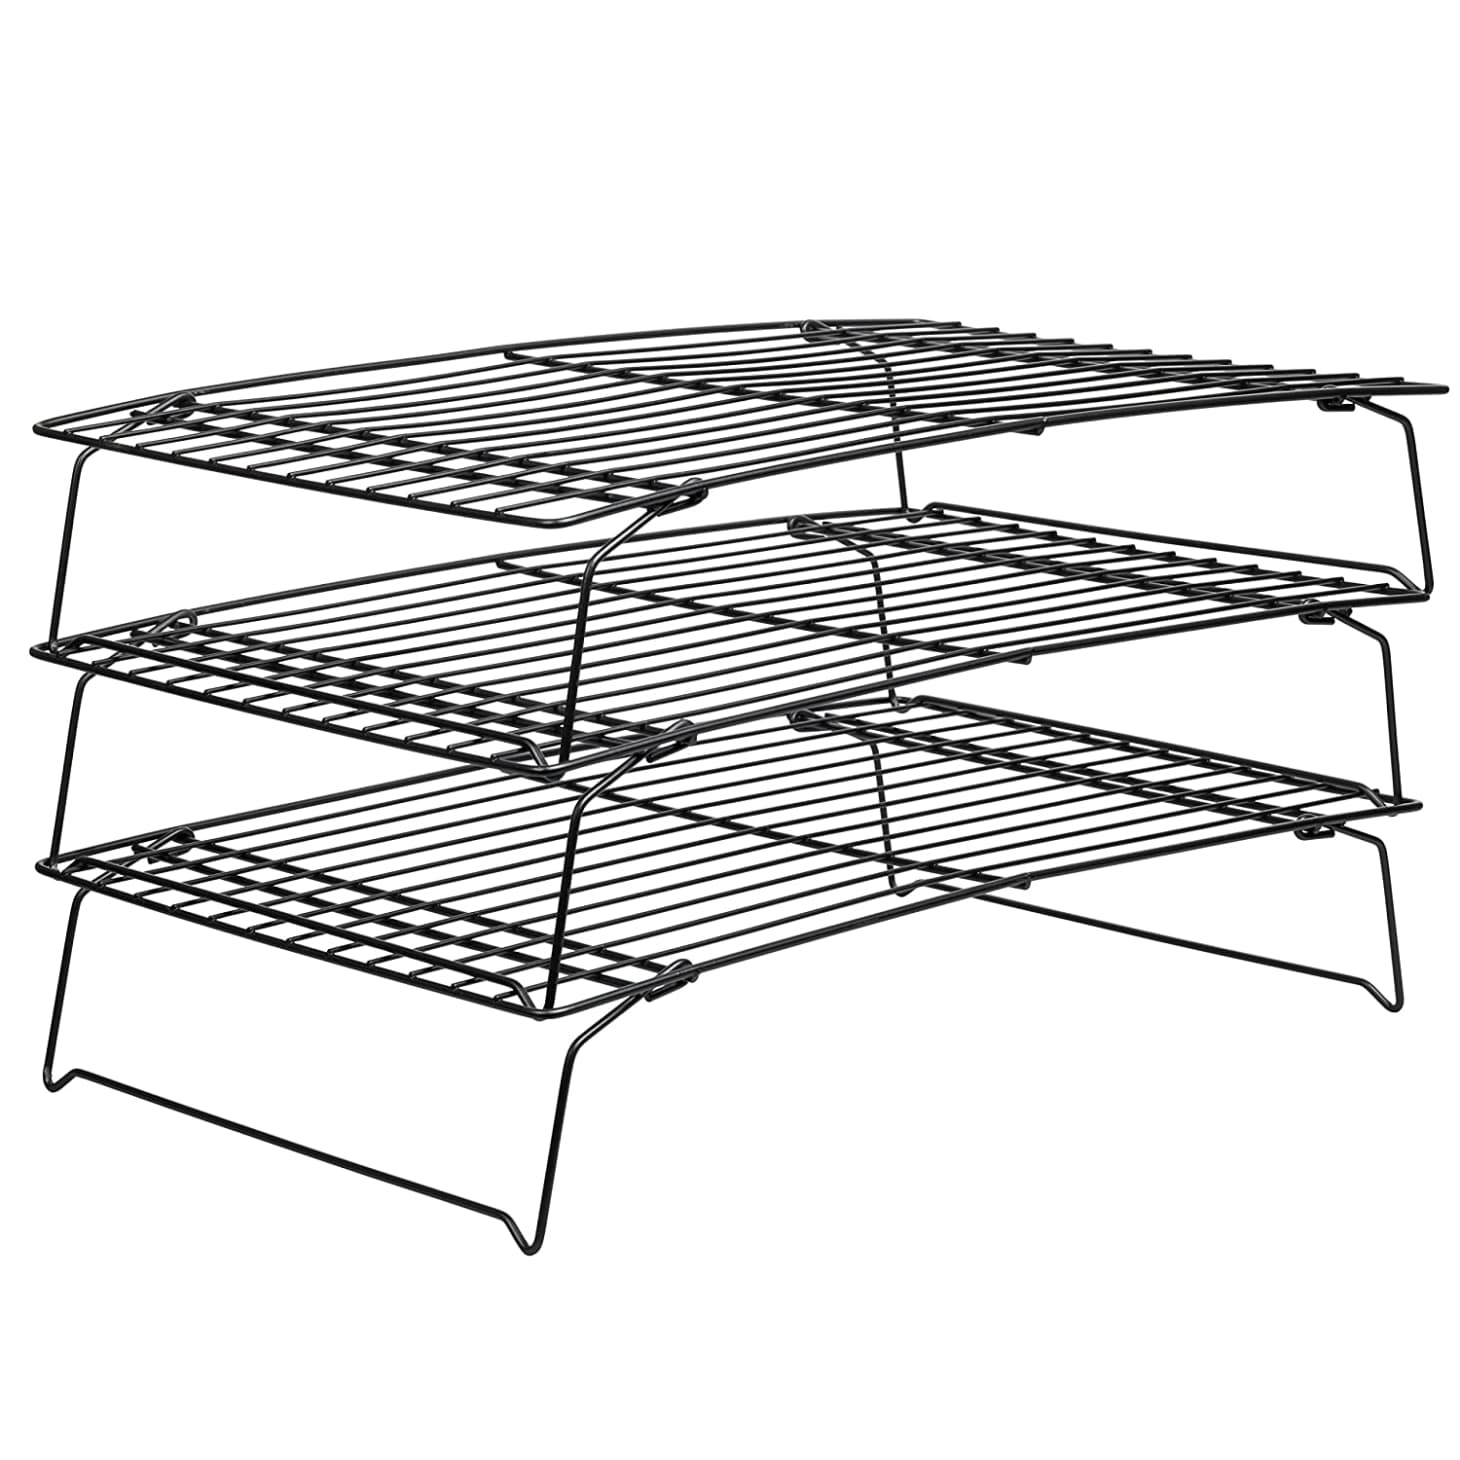 Superb Use A Stackable Cooling Rack To Double Your Refrigerators Home Interior And Landscaping Transignezvosmurscom